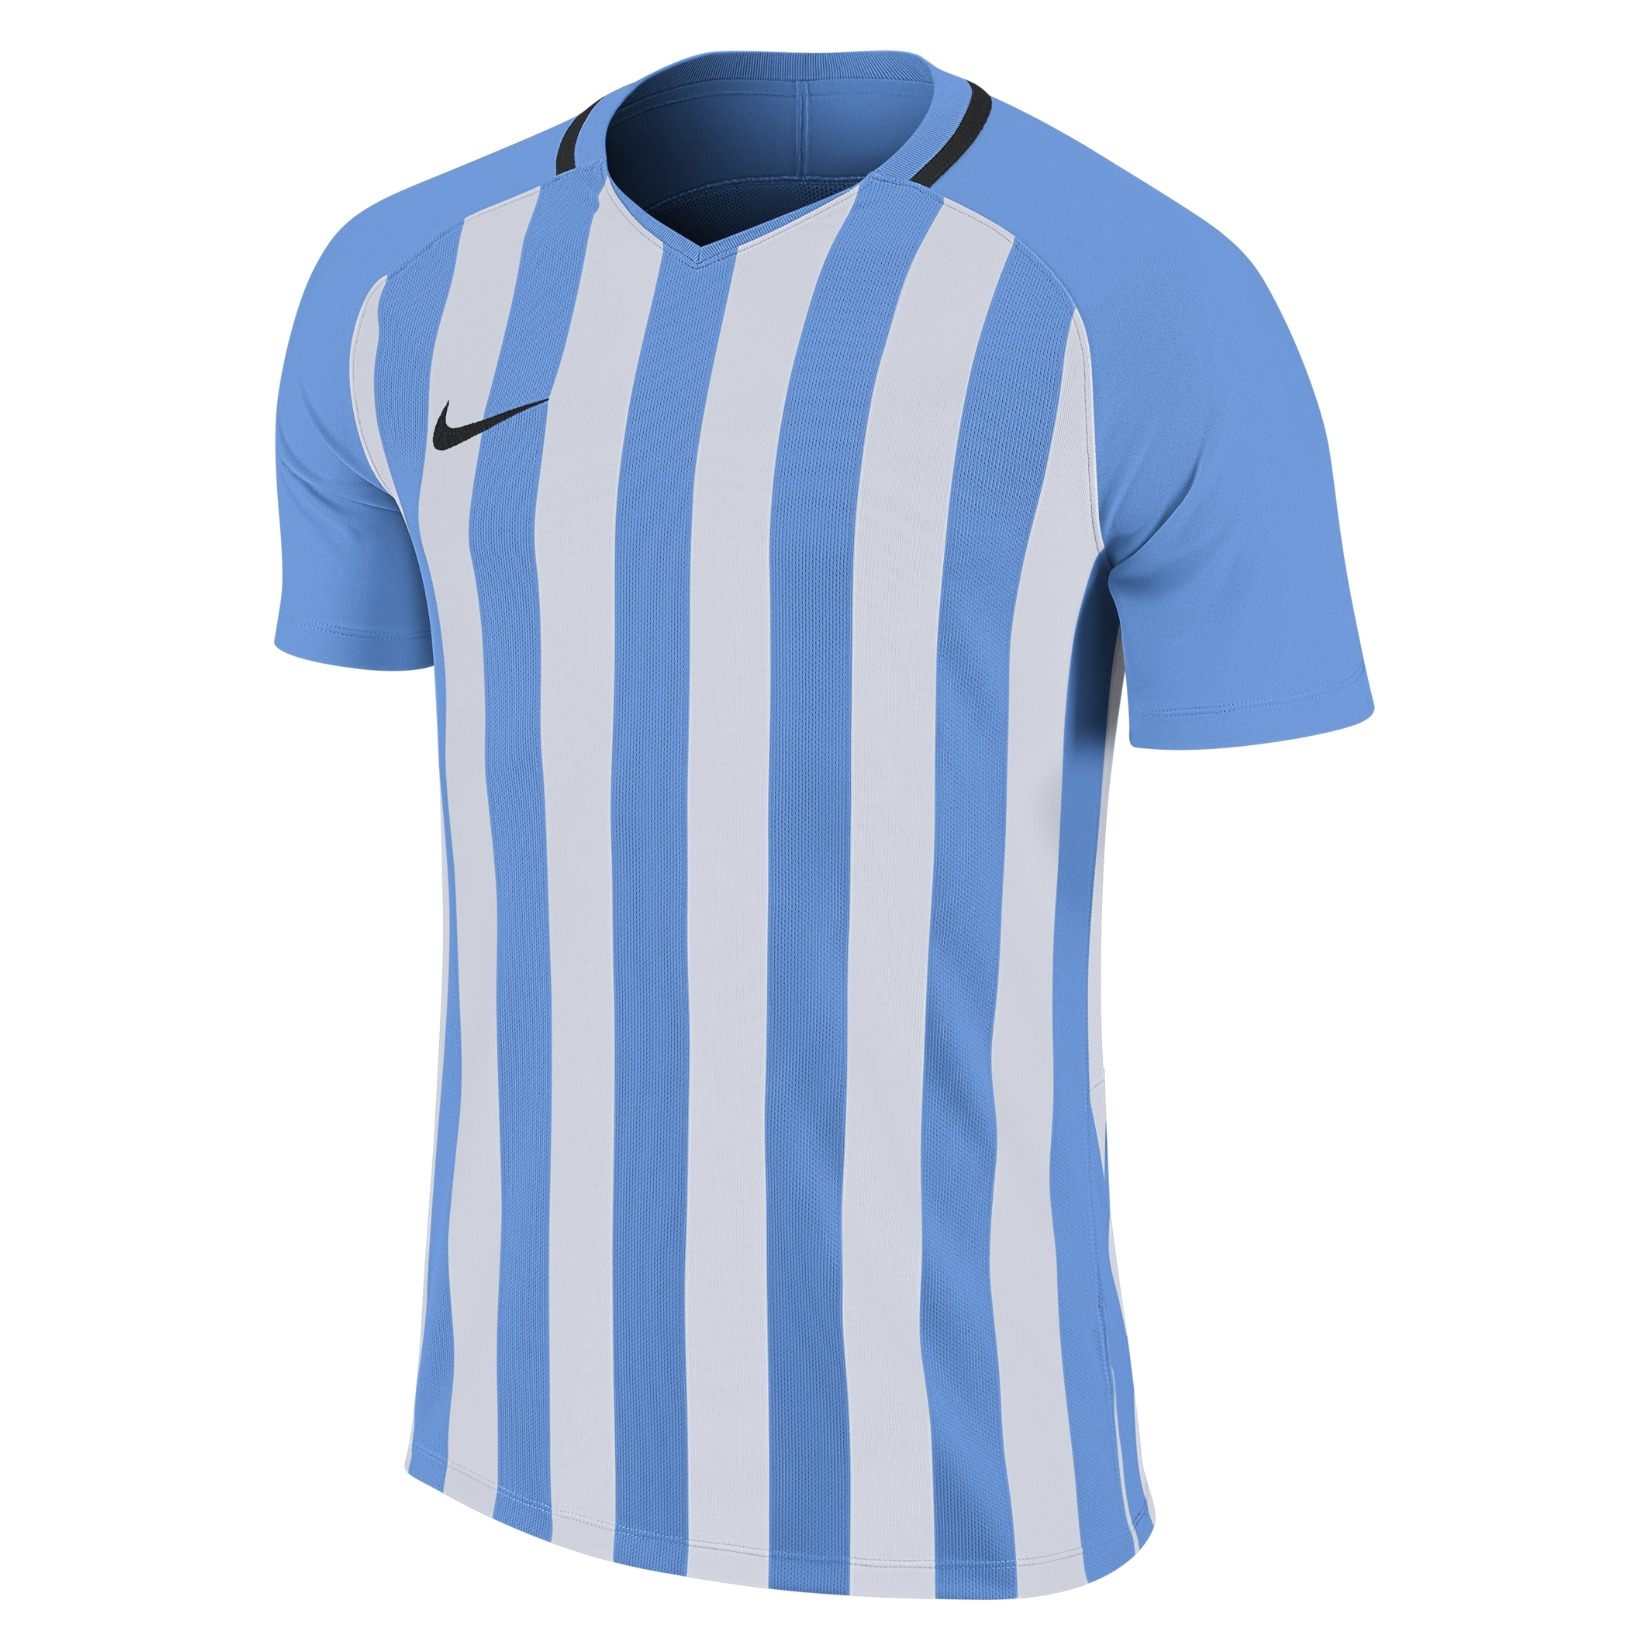 Nike Striped Division III Short Sleeve Shirt University Blue-White-Black-Black